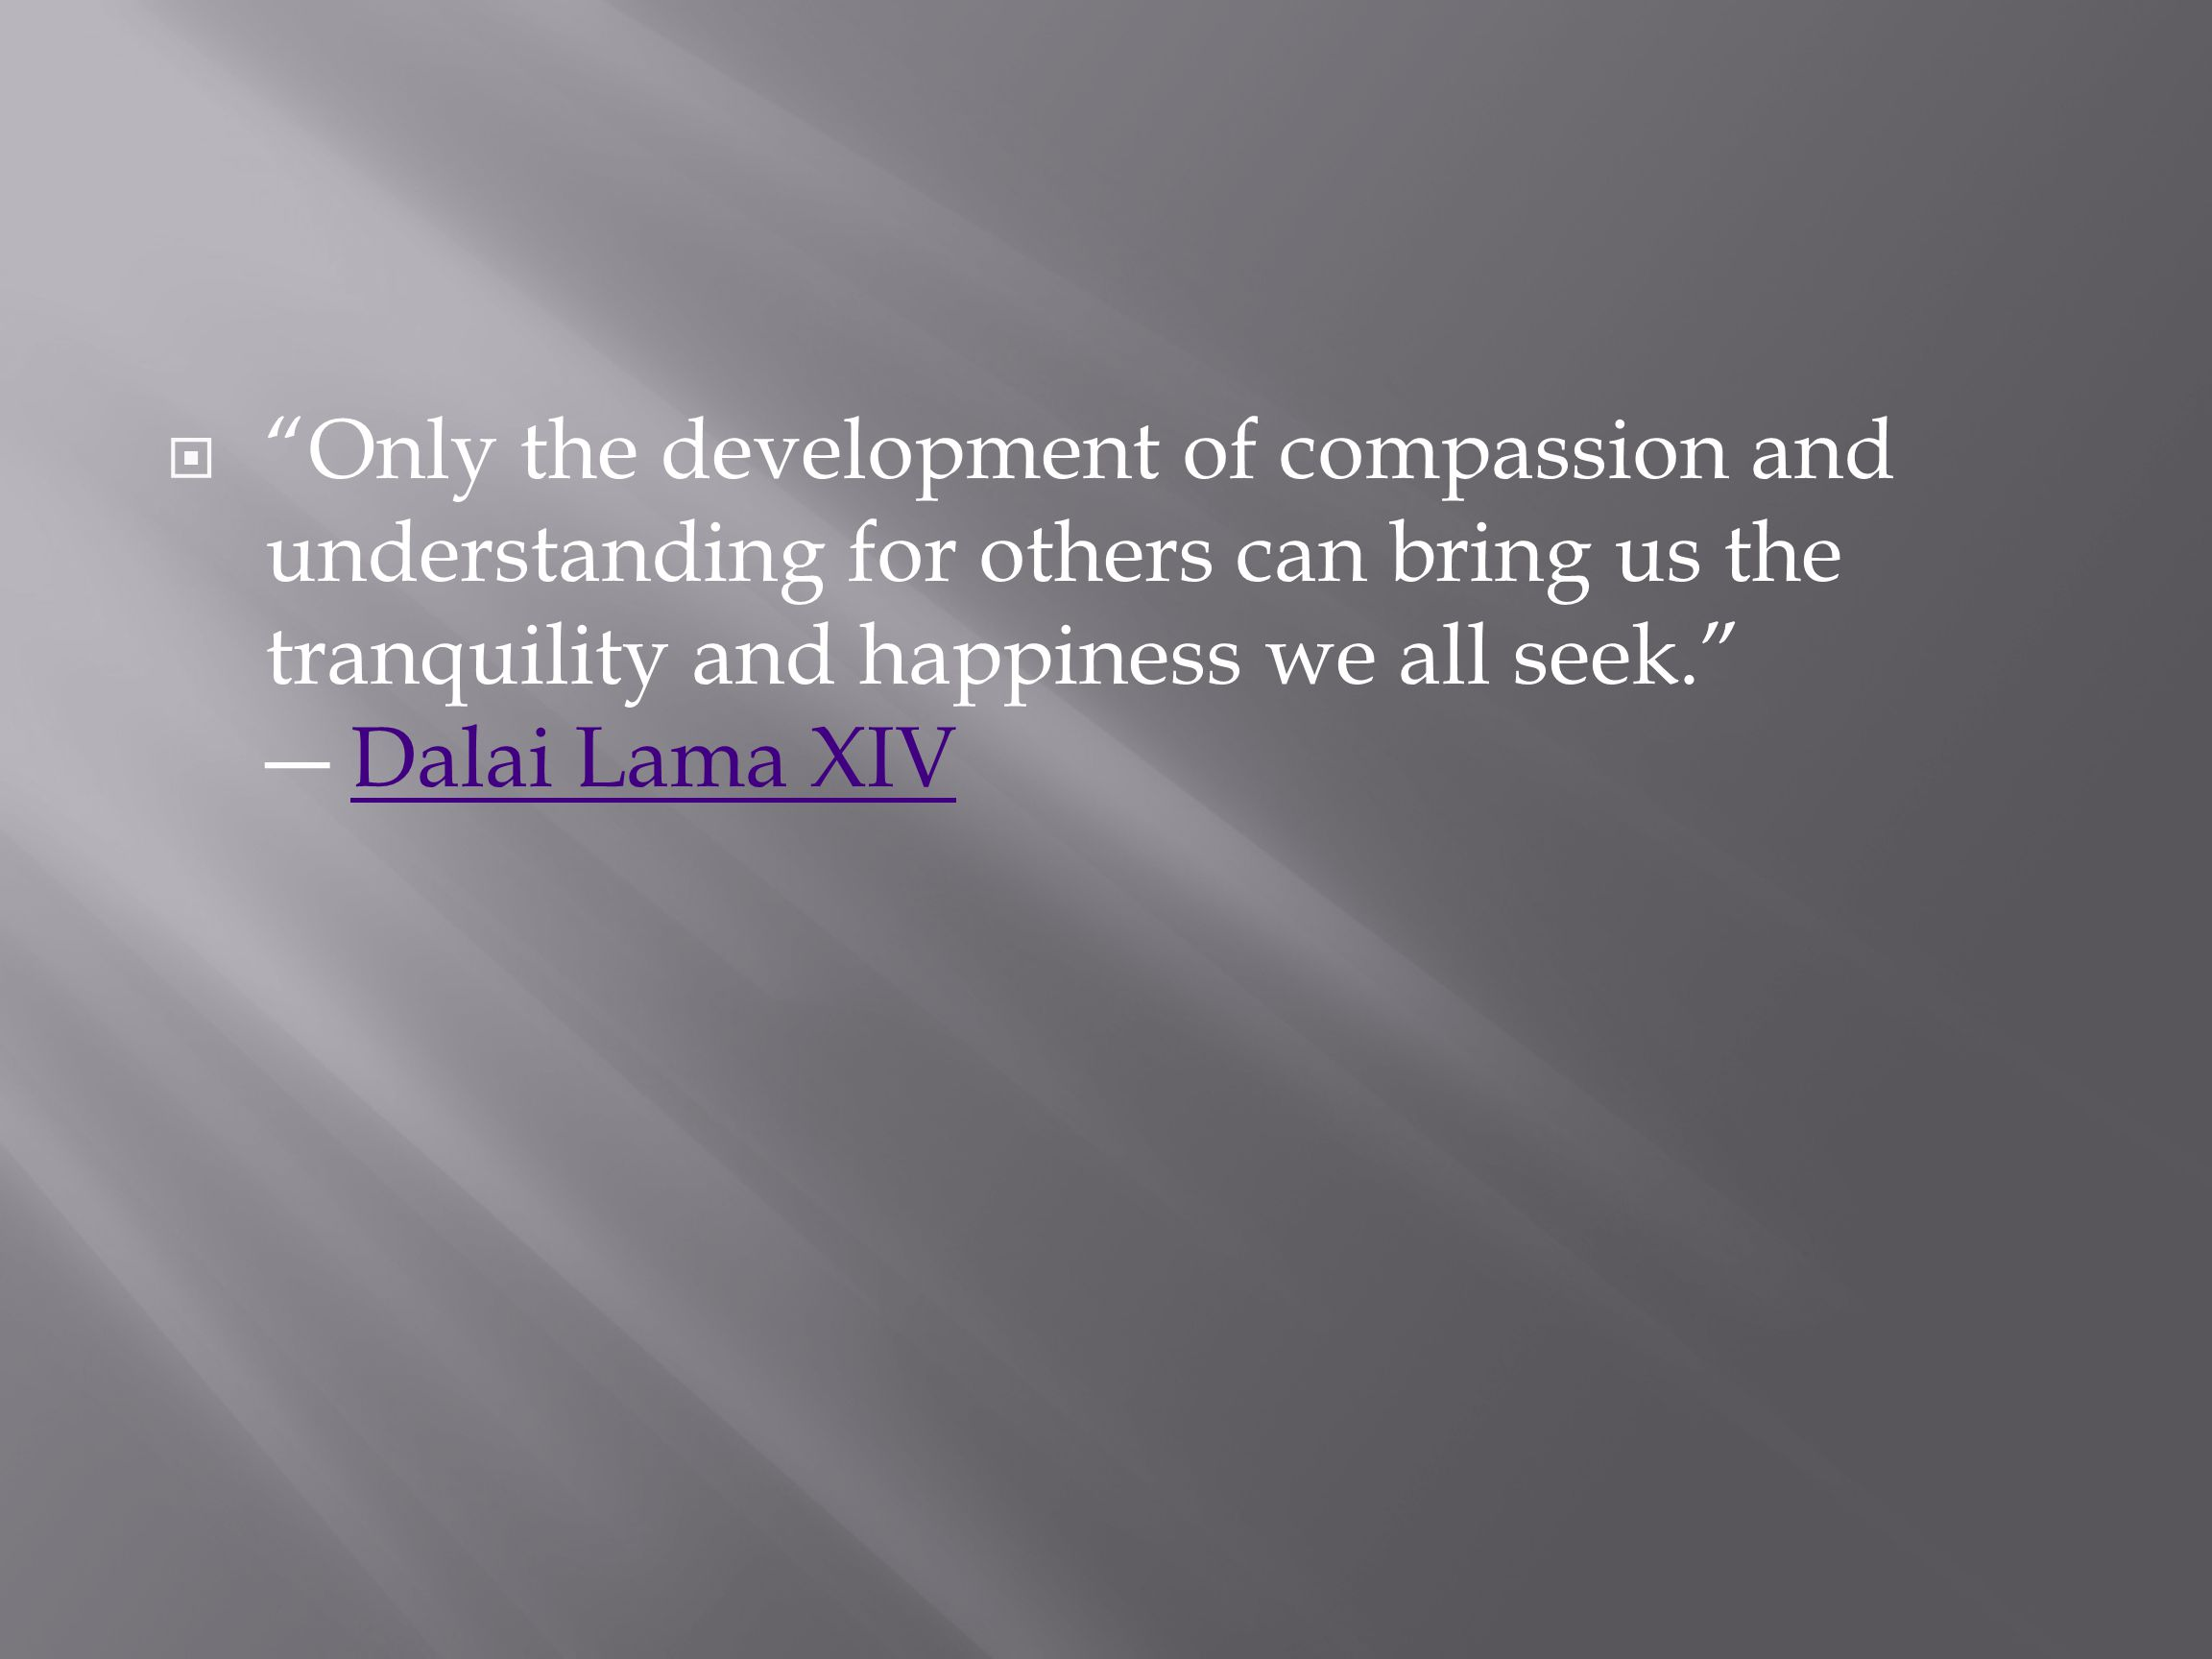  Only the development of compassion and understanding for others can bring us the tranquility and happiness we all seek. ― Dalai Lama XIVDalai Lama XIV